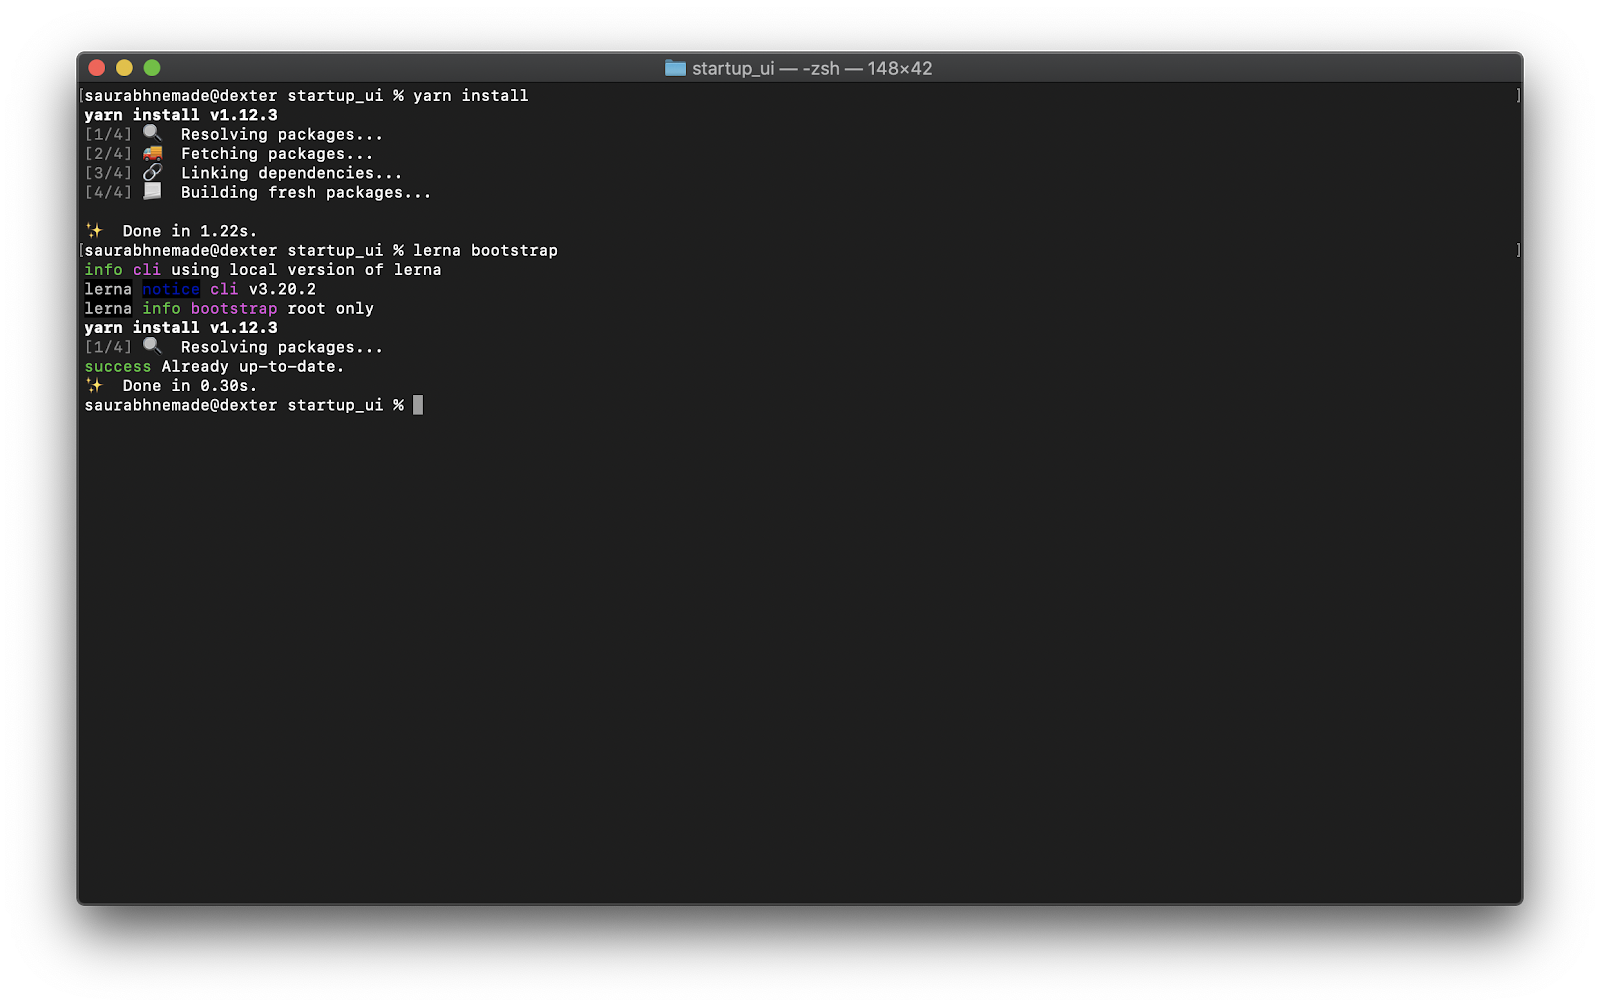 Reinstalling dependencies and bootstrapping output